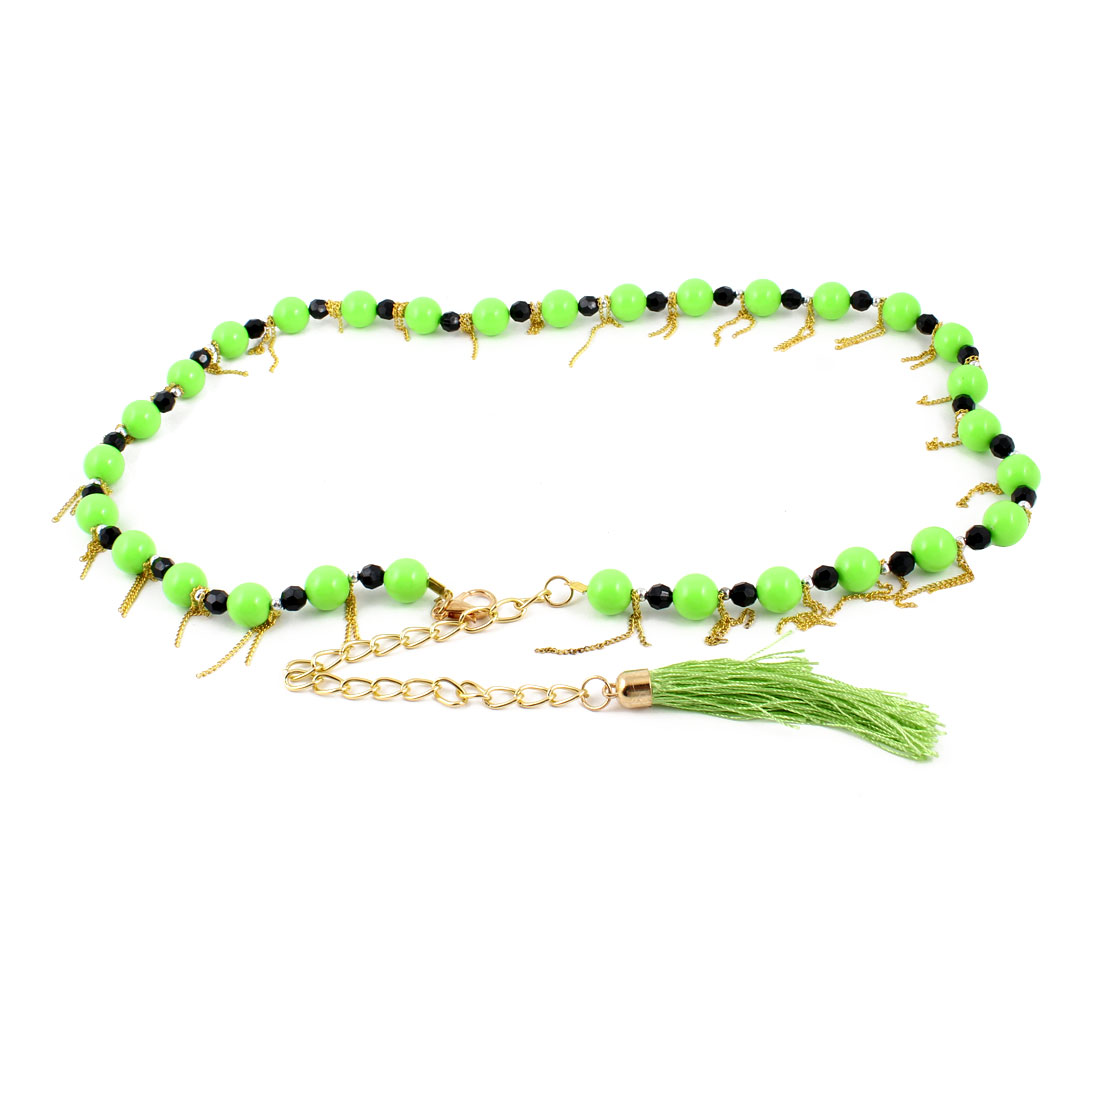 Lobster Clasp Plastic 14mm Bead Dia Decor Adjustable Chain Waist Belt Band Green